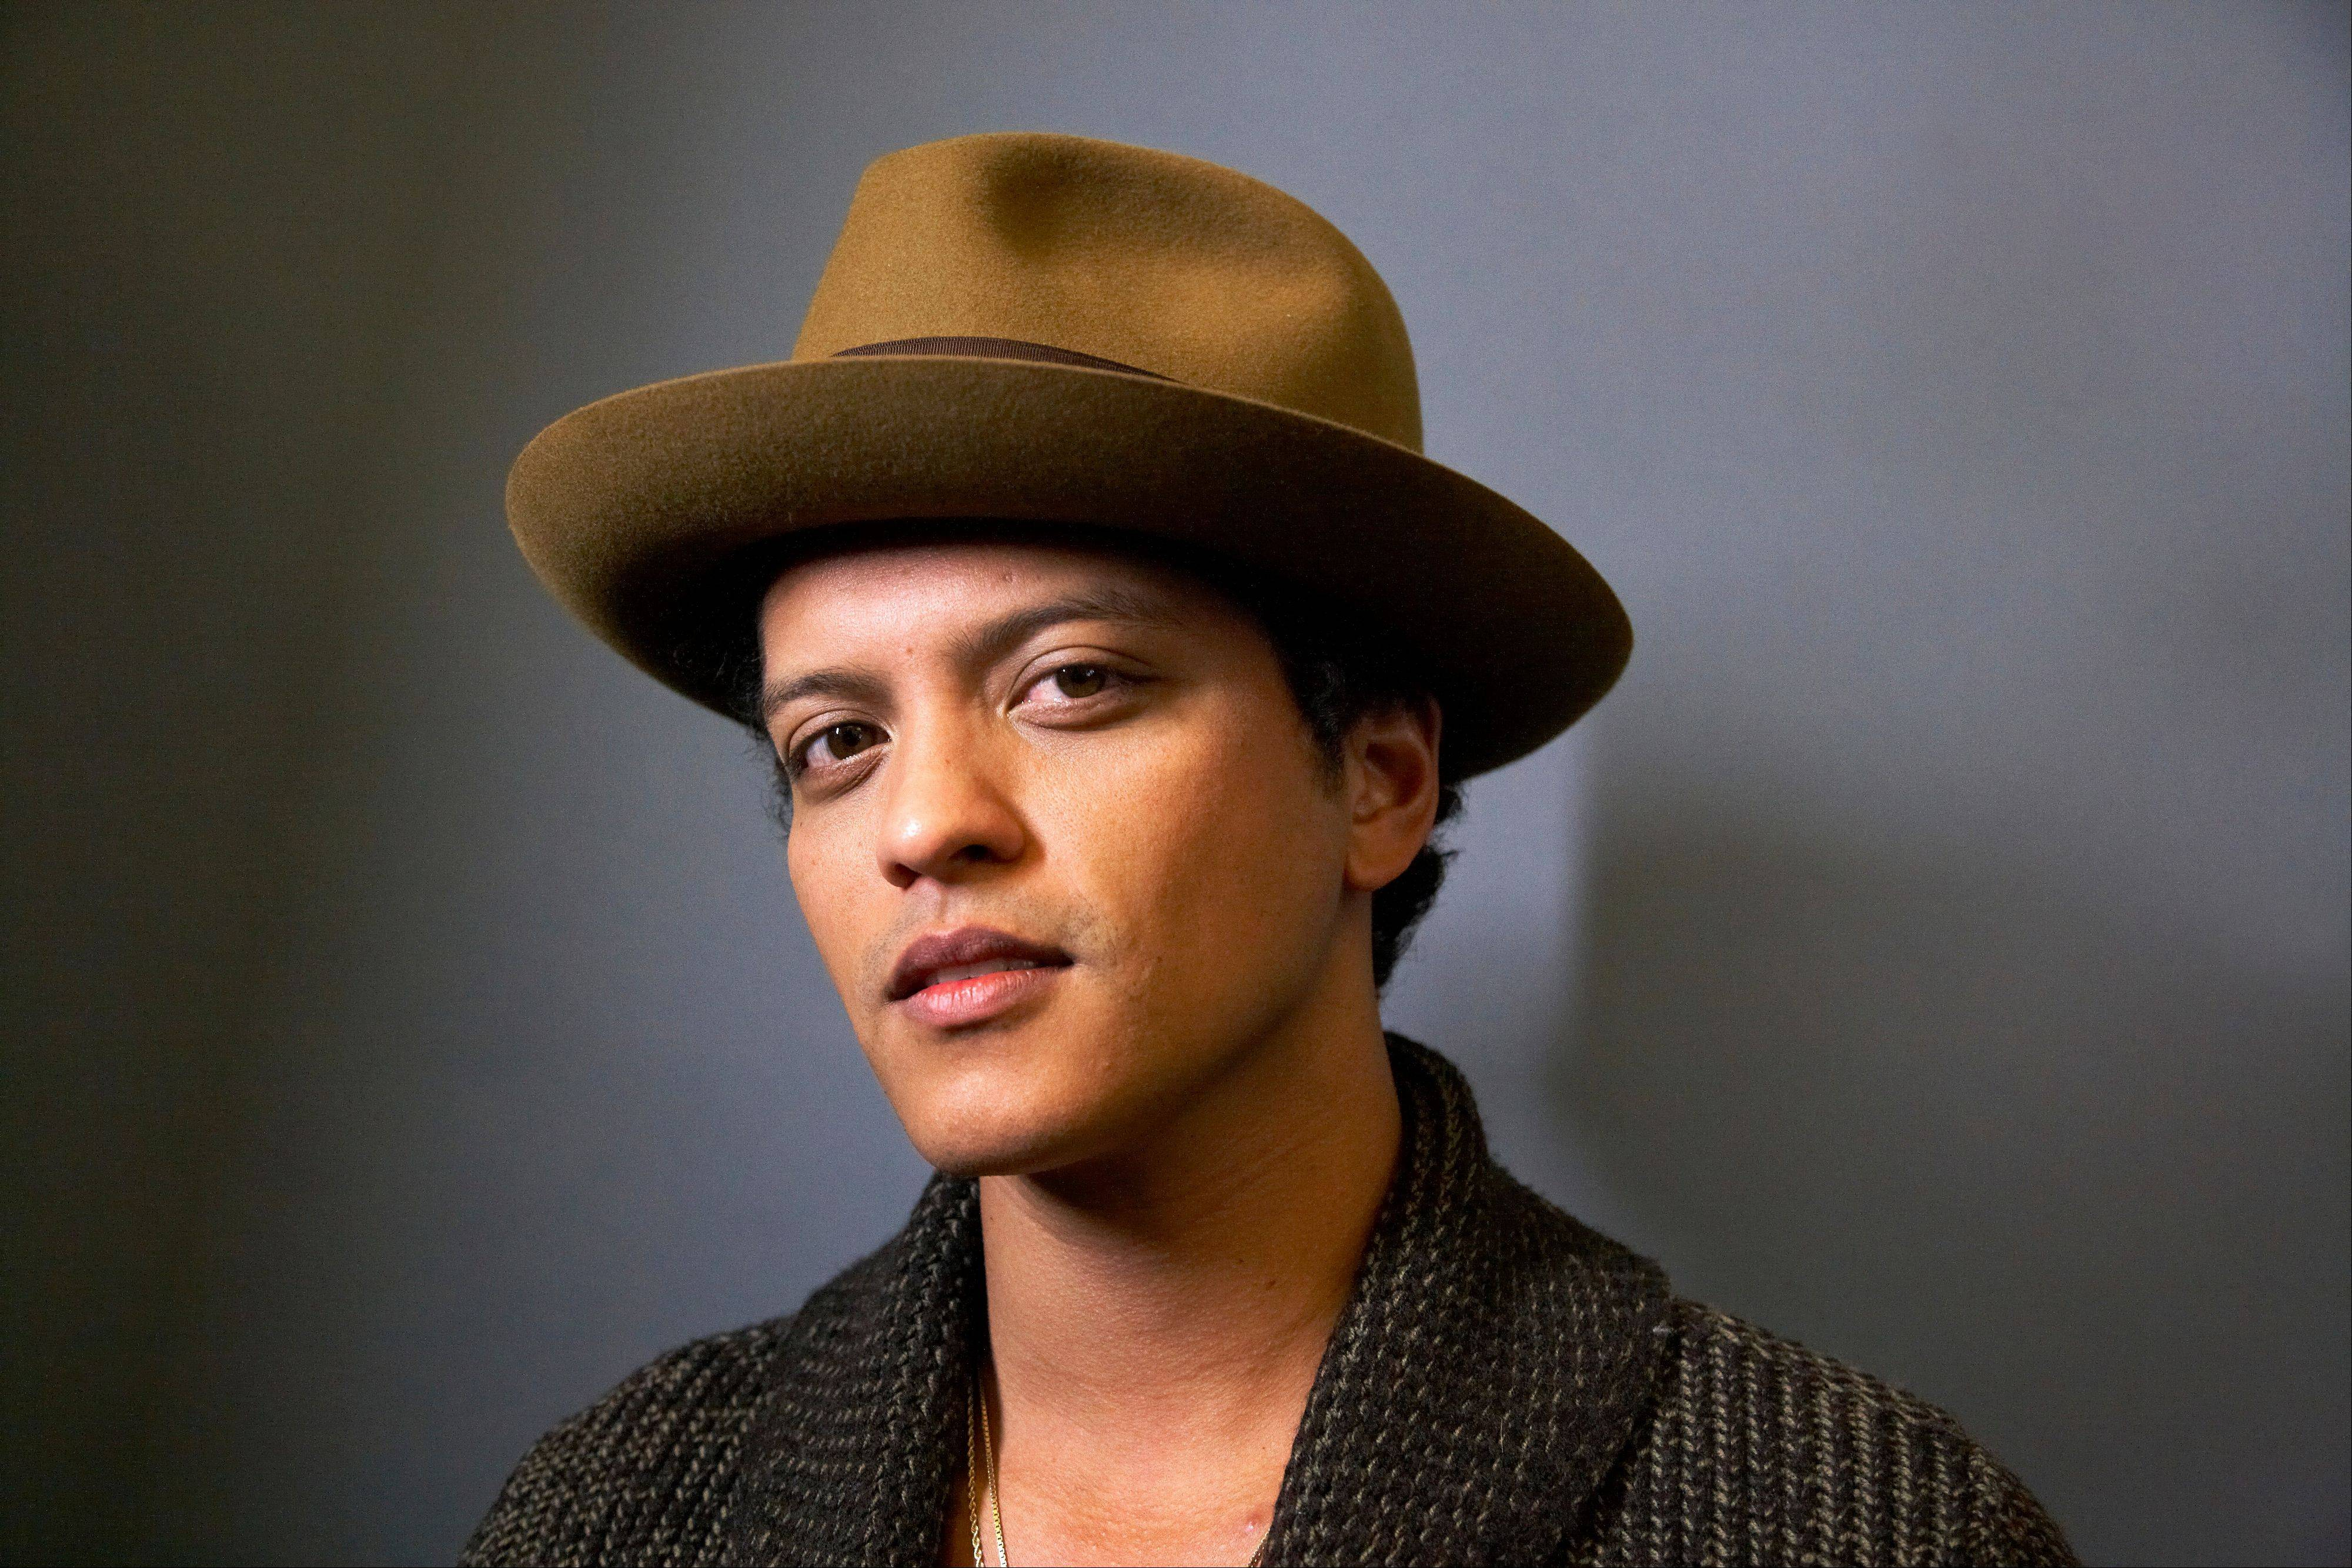 American singer-songwriter and record producer Bruno Mars says his recent appearance on �Saturday Night Live� was so much fun he�d be happy to do it again.